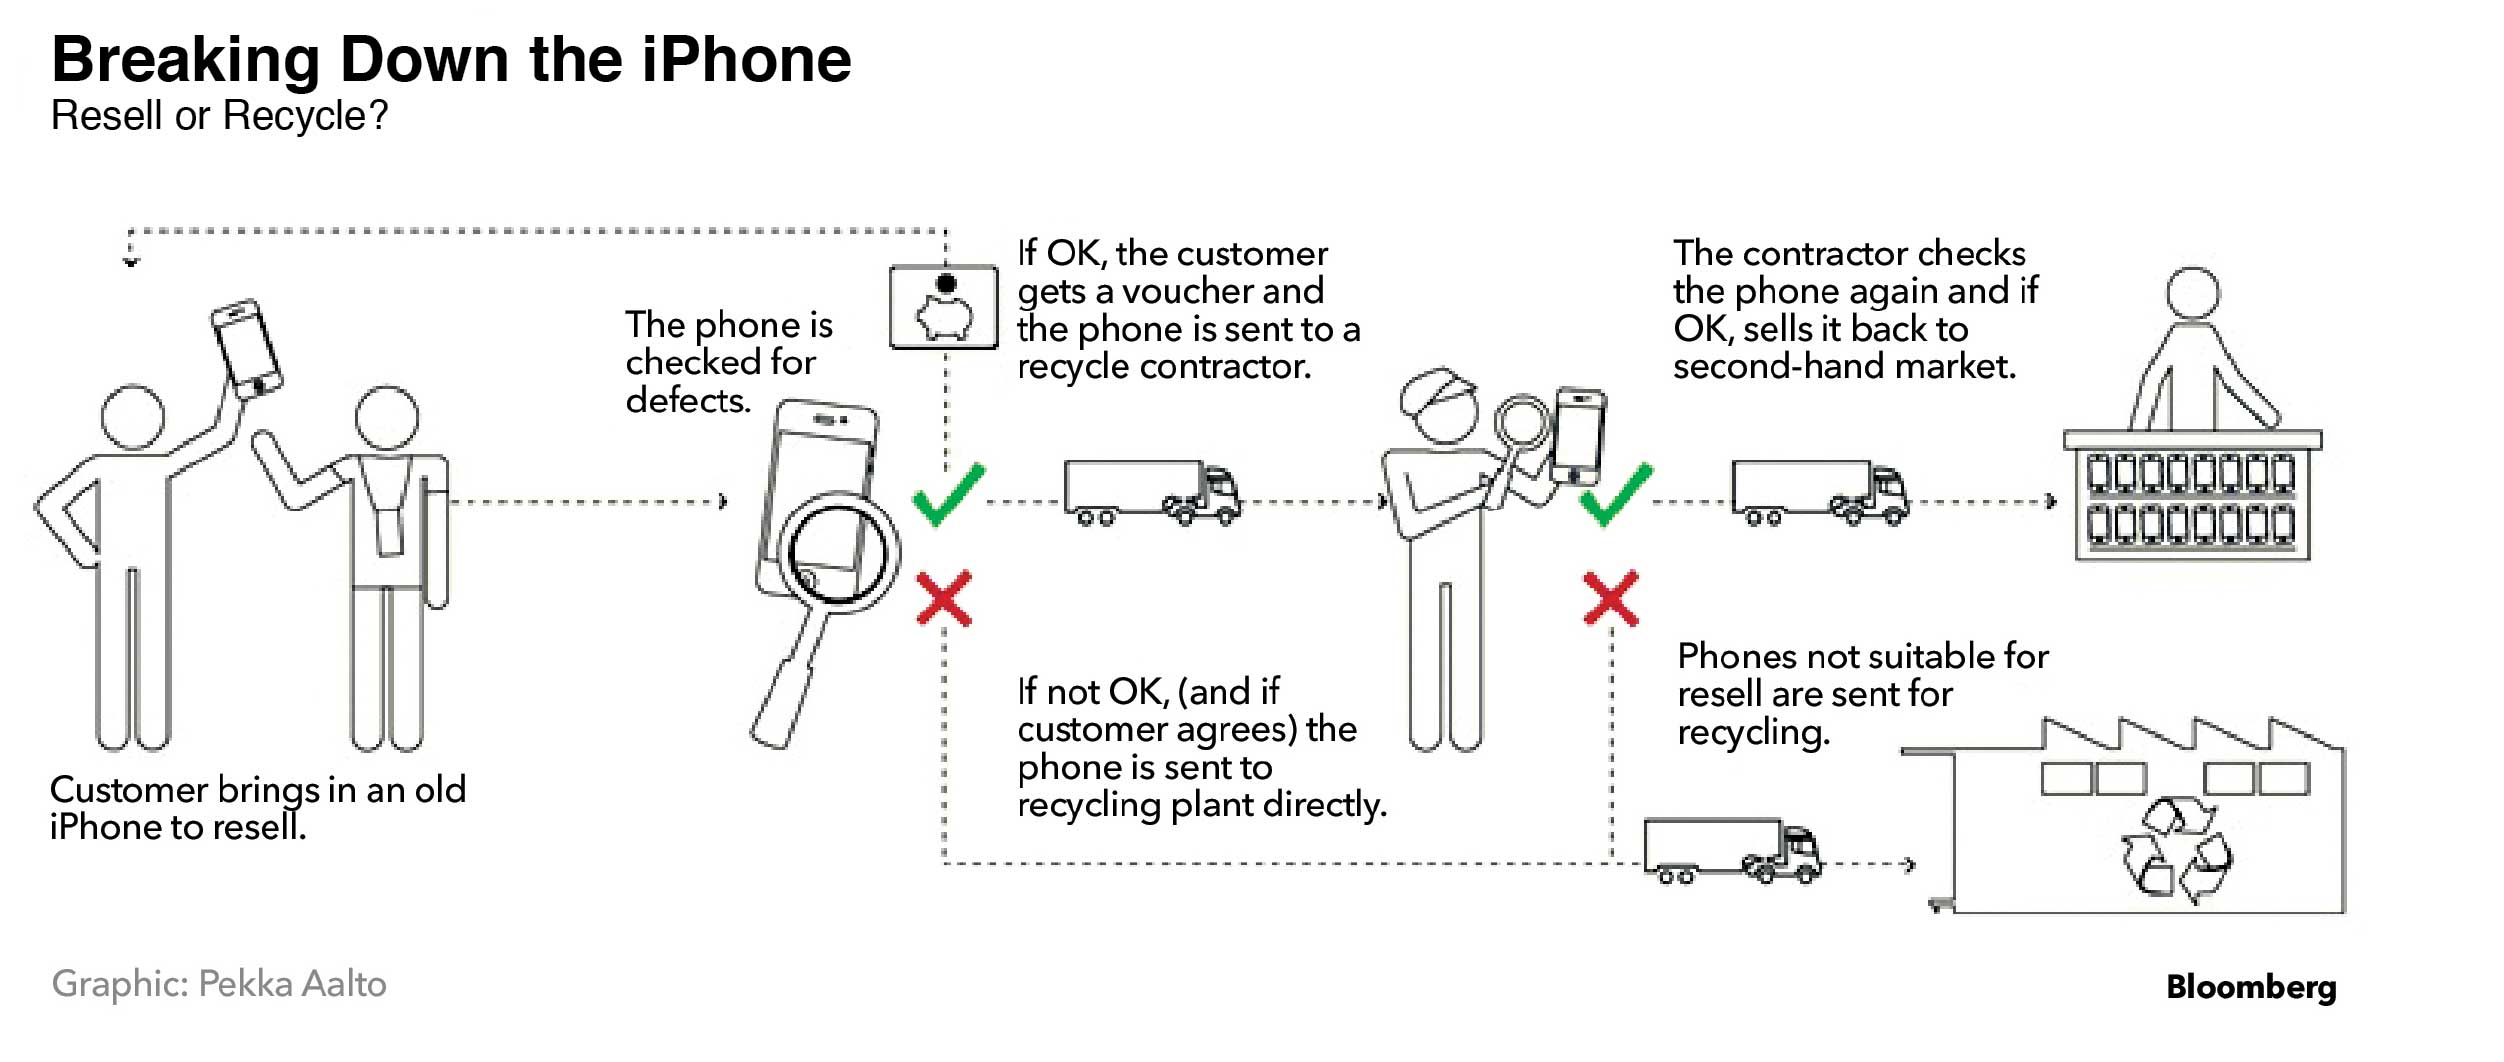 Breaking Down the iPhone: Resell or Recycle